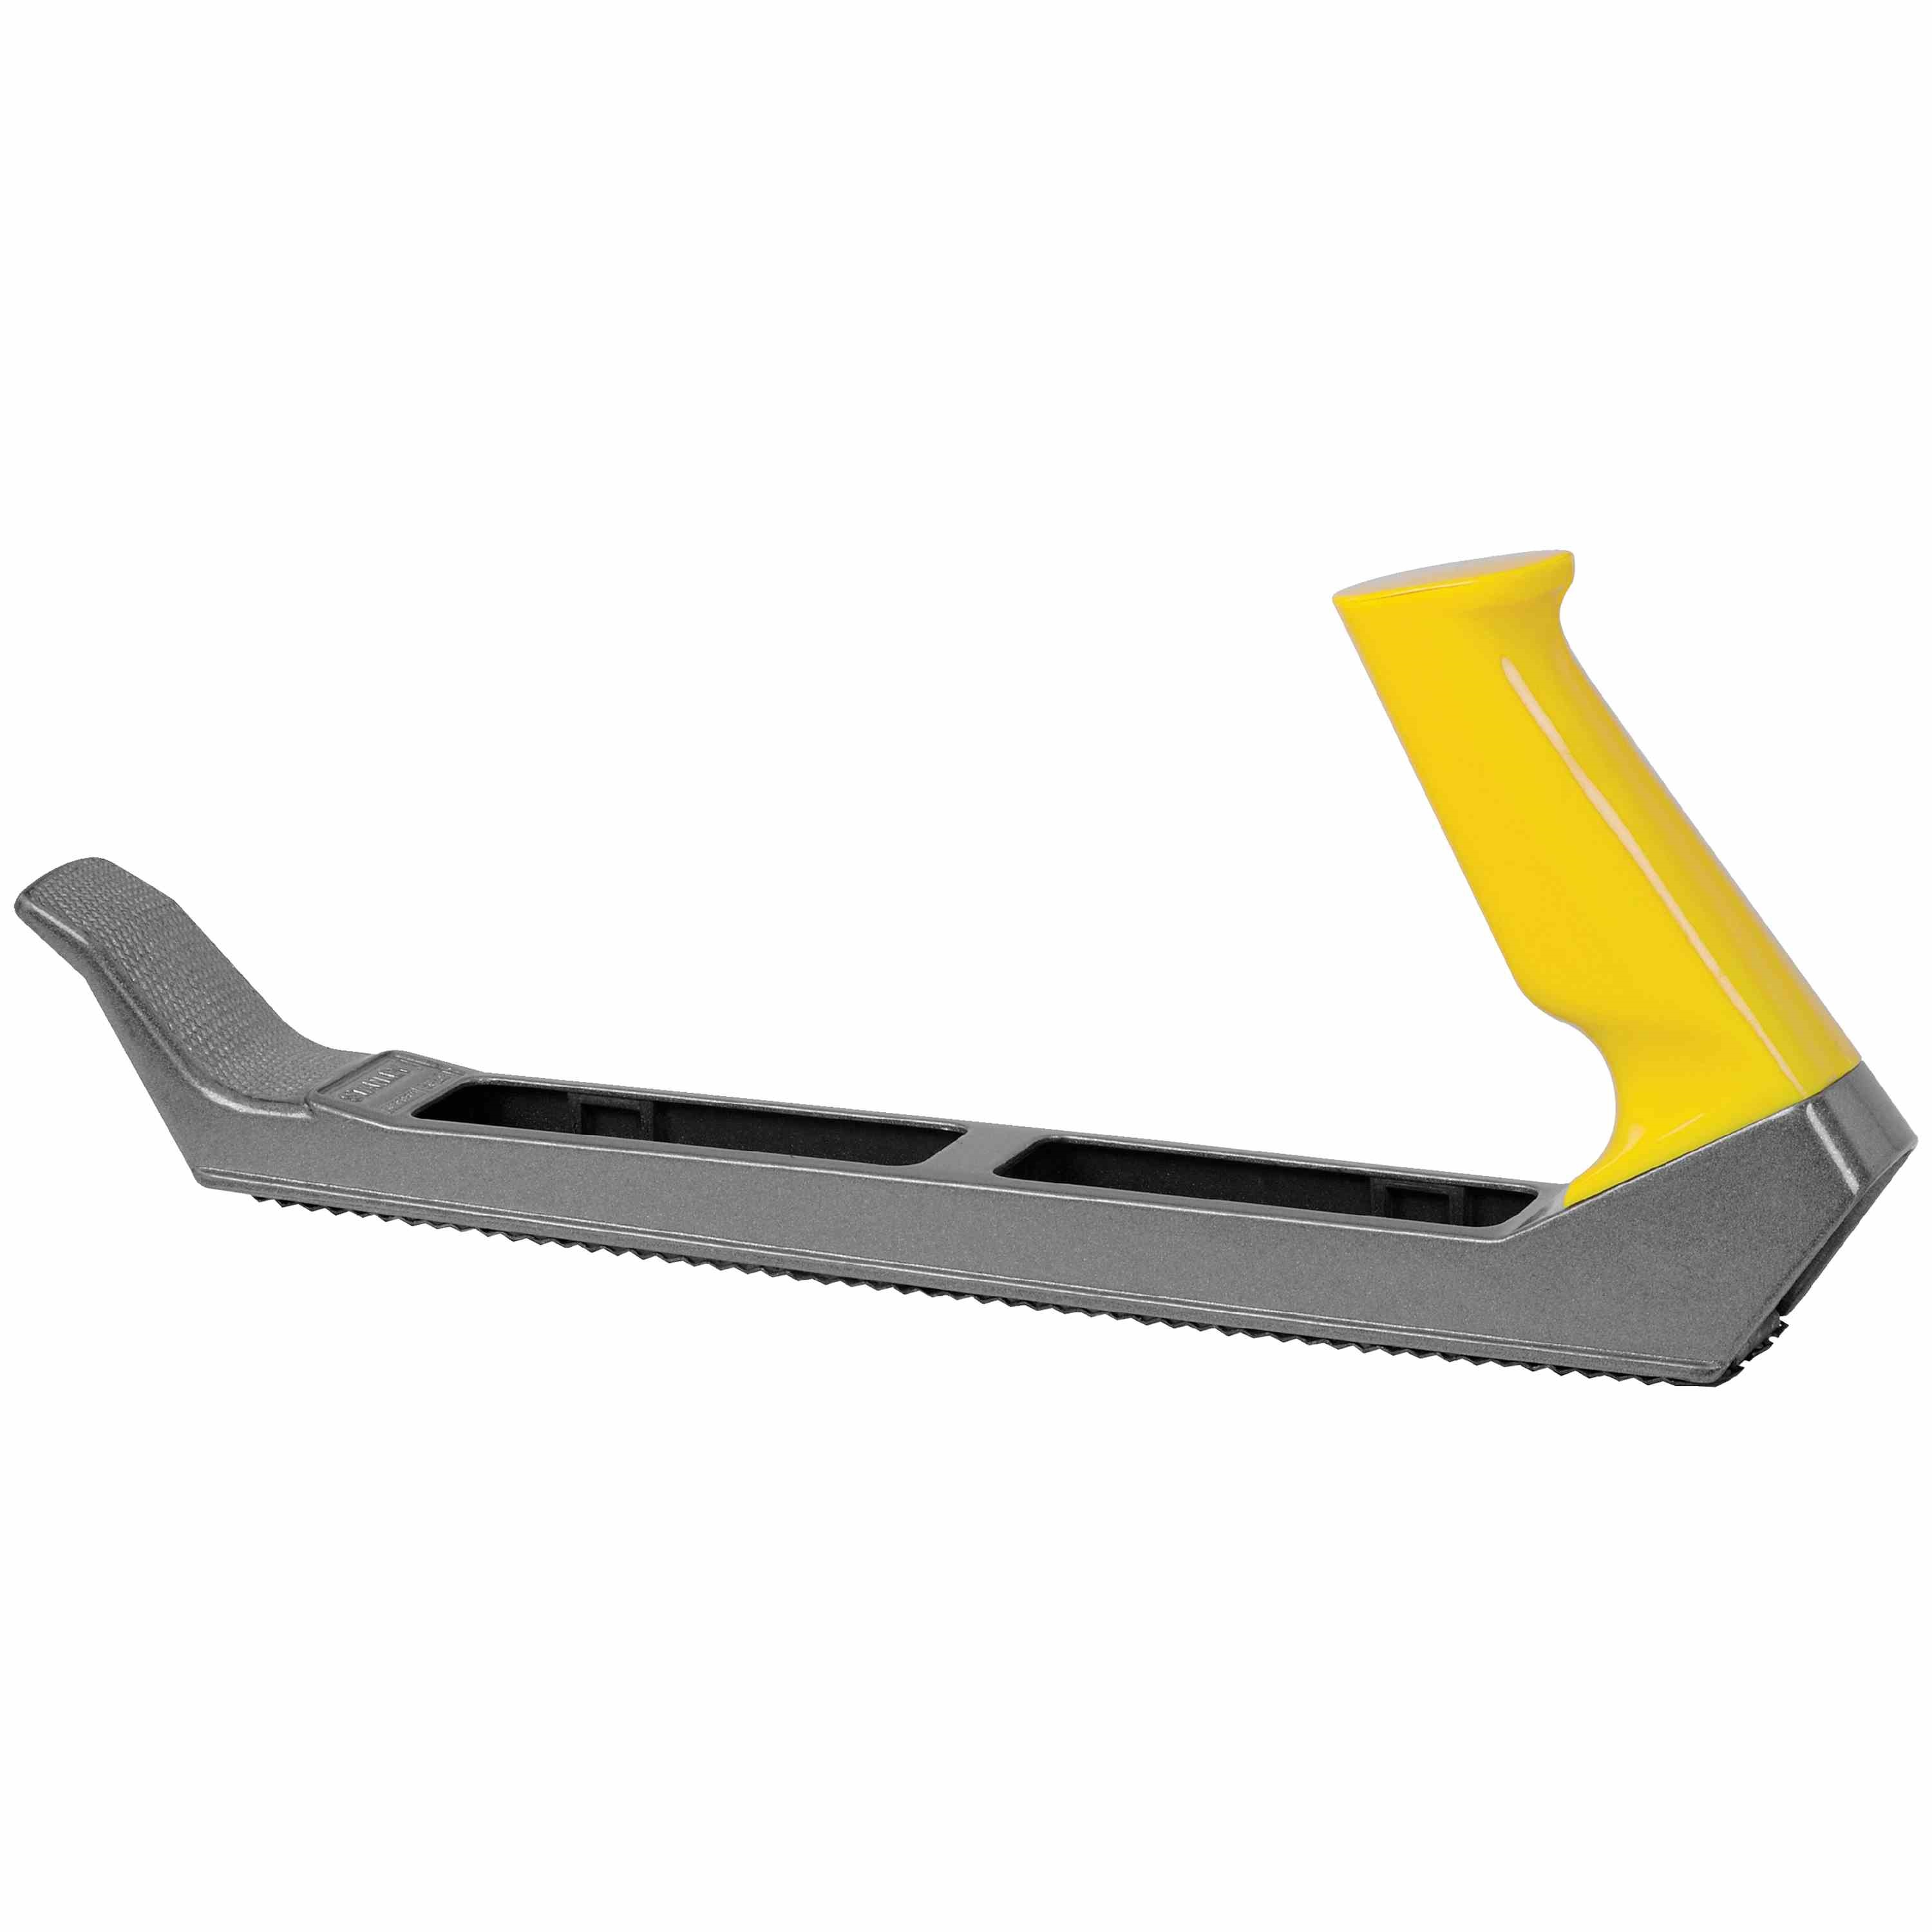 Stanley Tools - 10 in Surform Plane Type Regular Cut Blade - 21-296